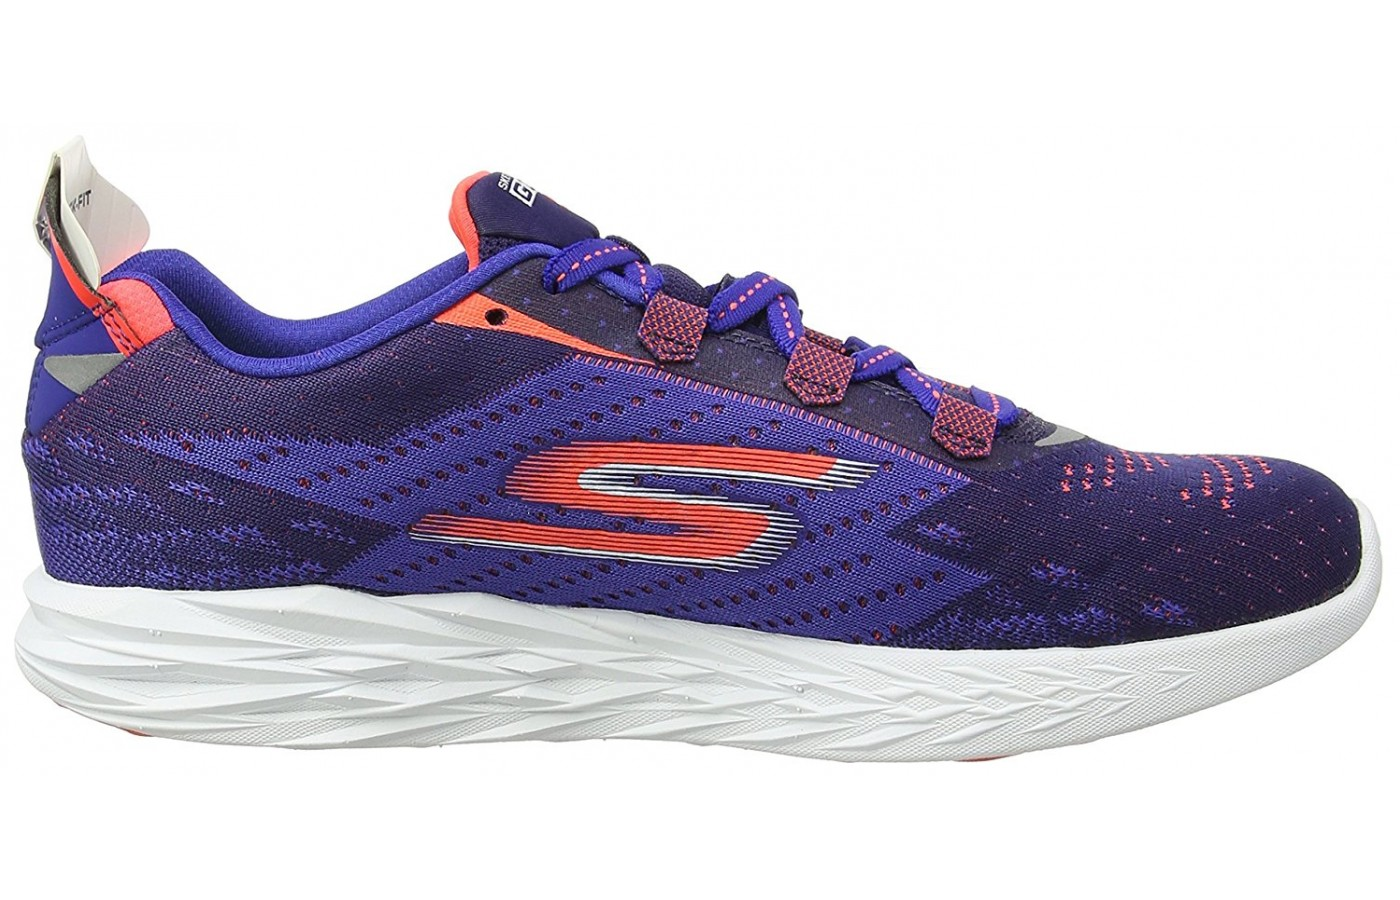 Skechers GoRun 5 side